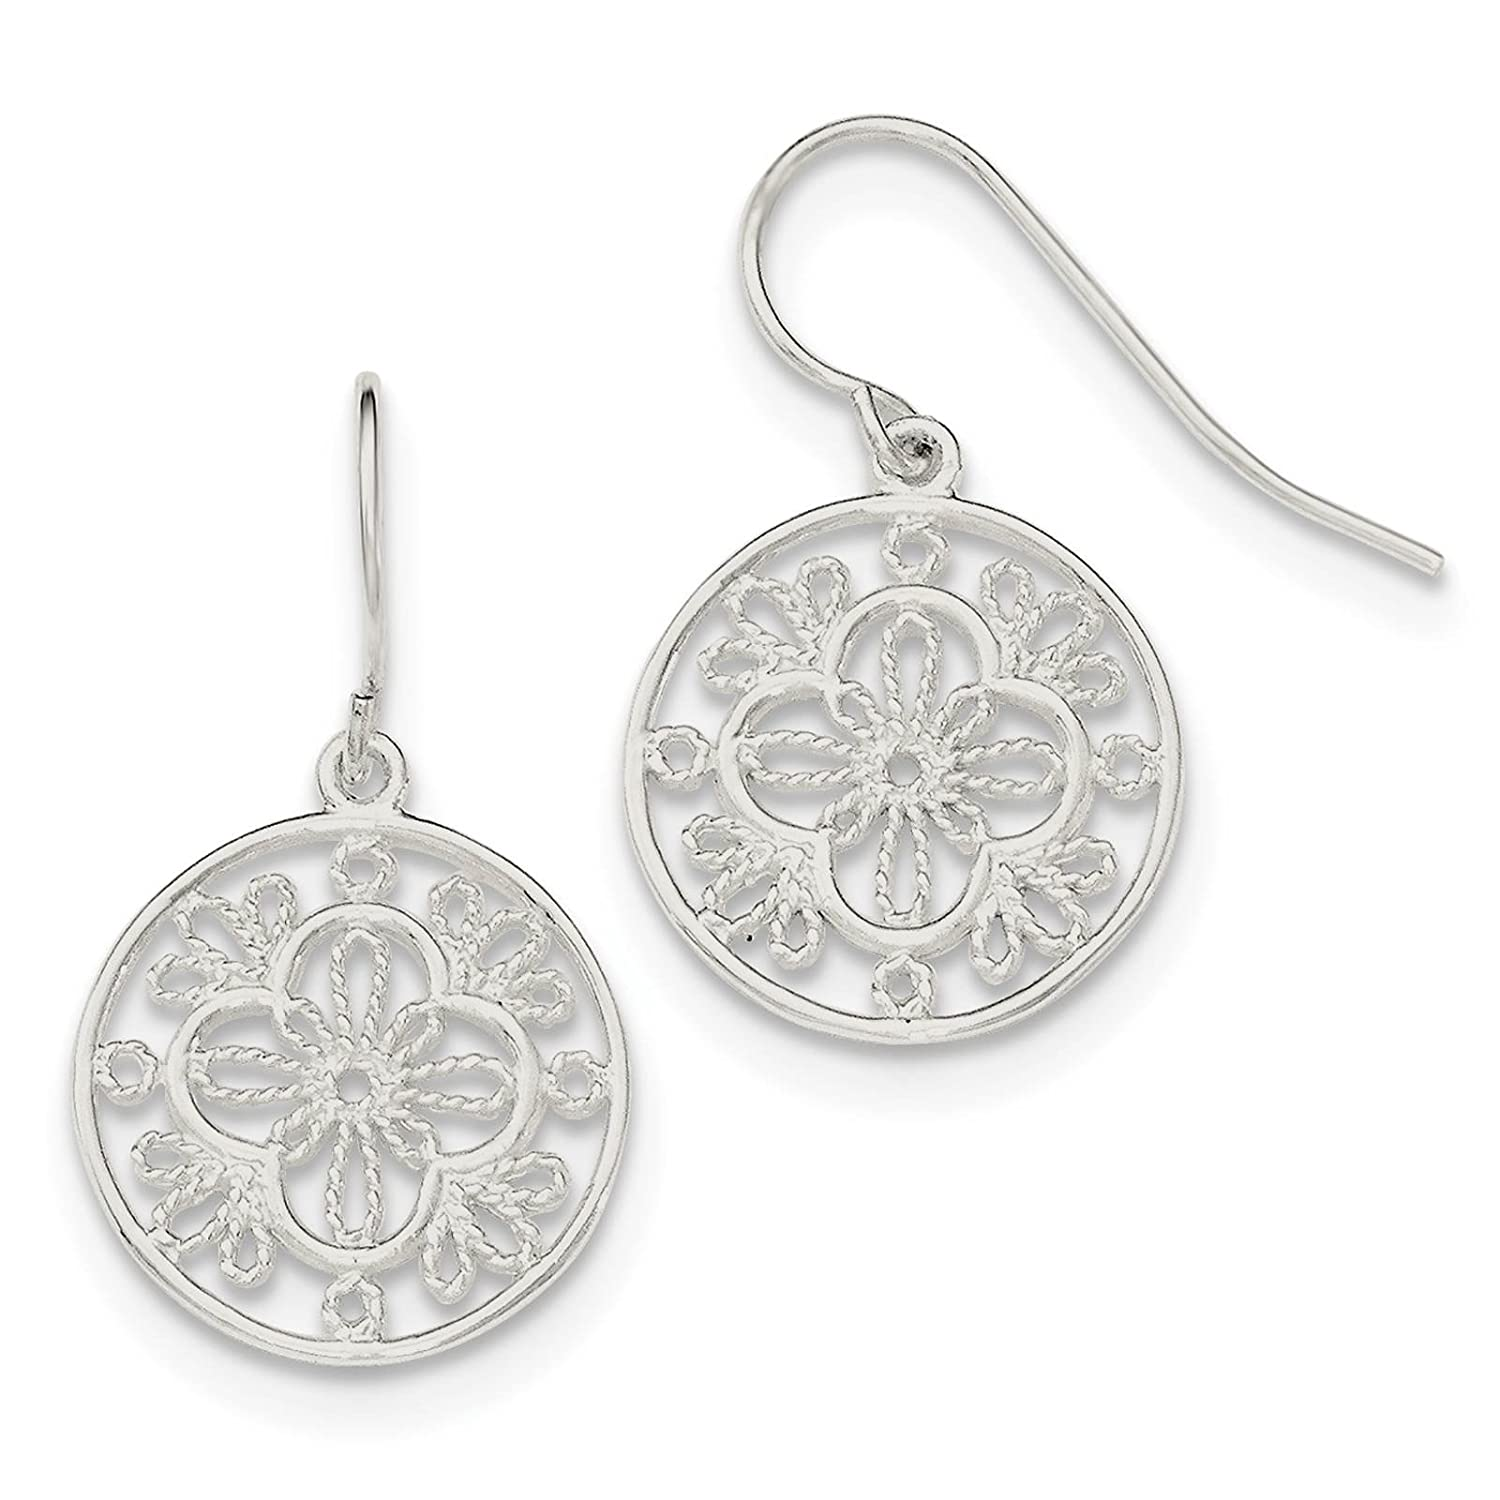 925 Sterling Silver Polished Filigree Circle Dangle Earrings